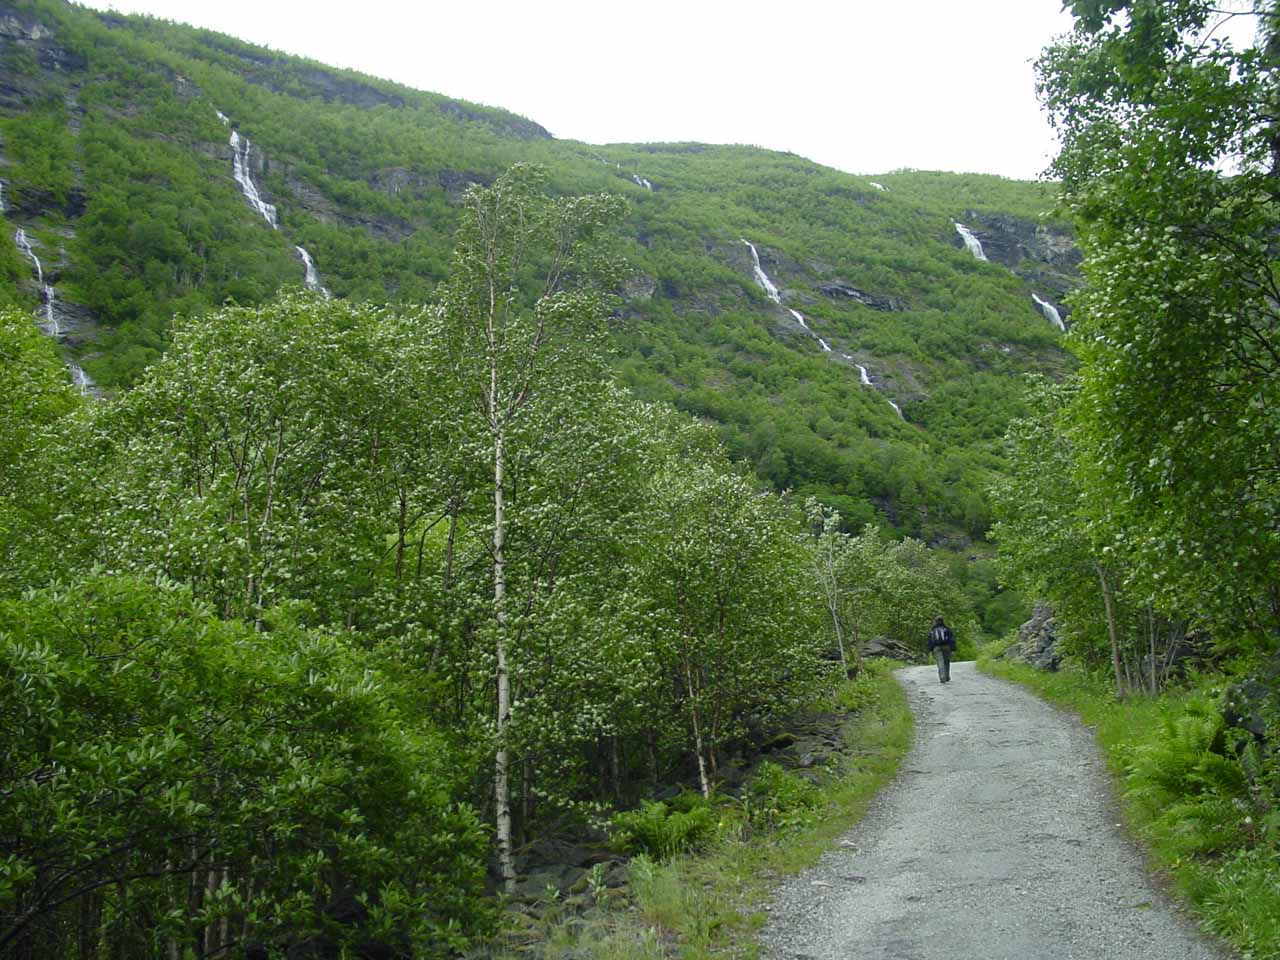 Lots of waterfalls along this trail as we got closer to Vetti